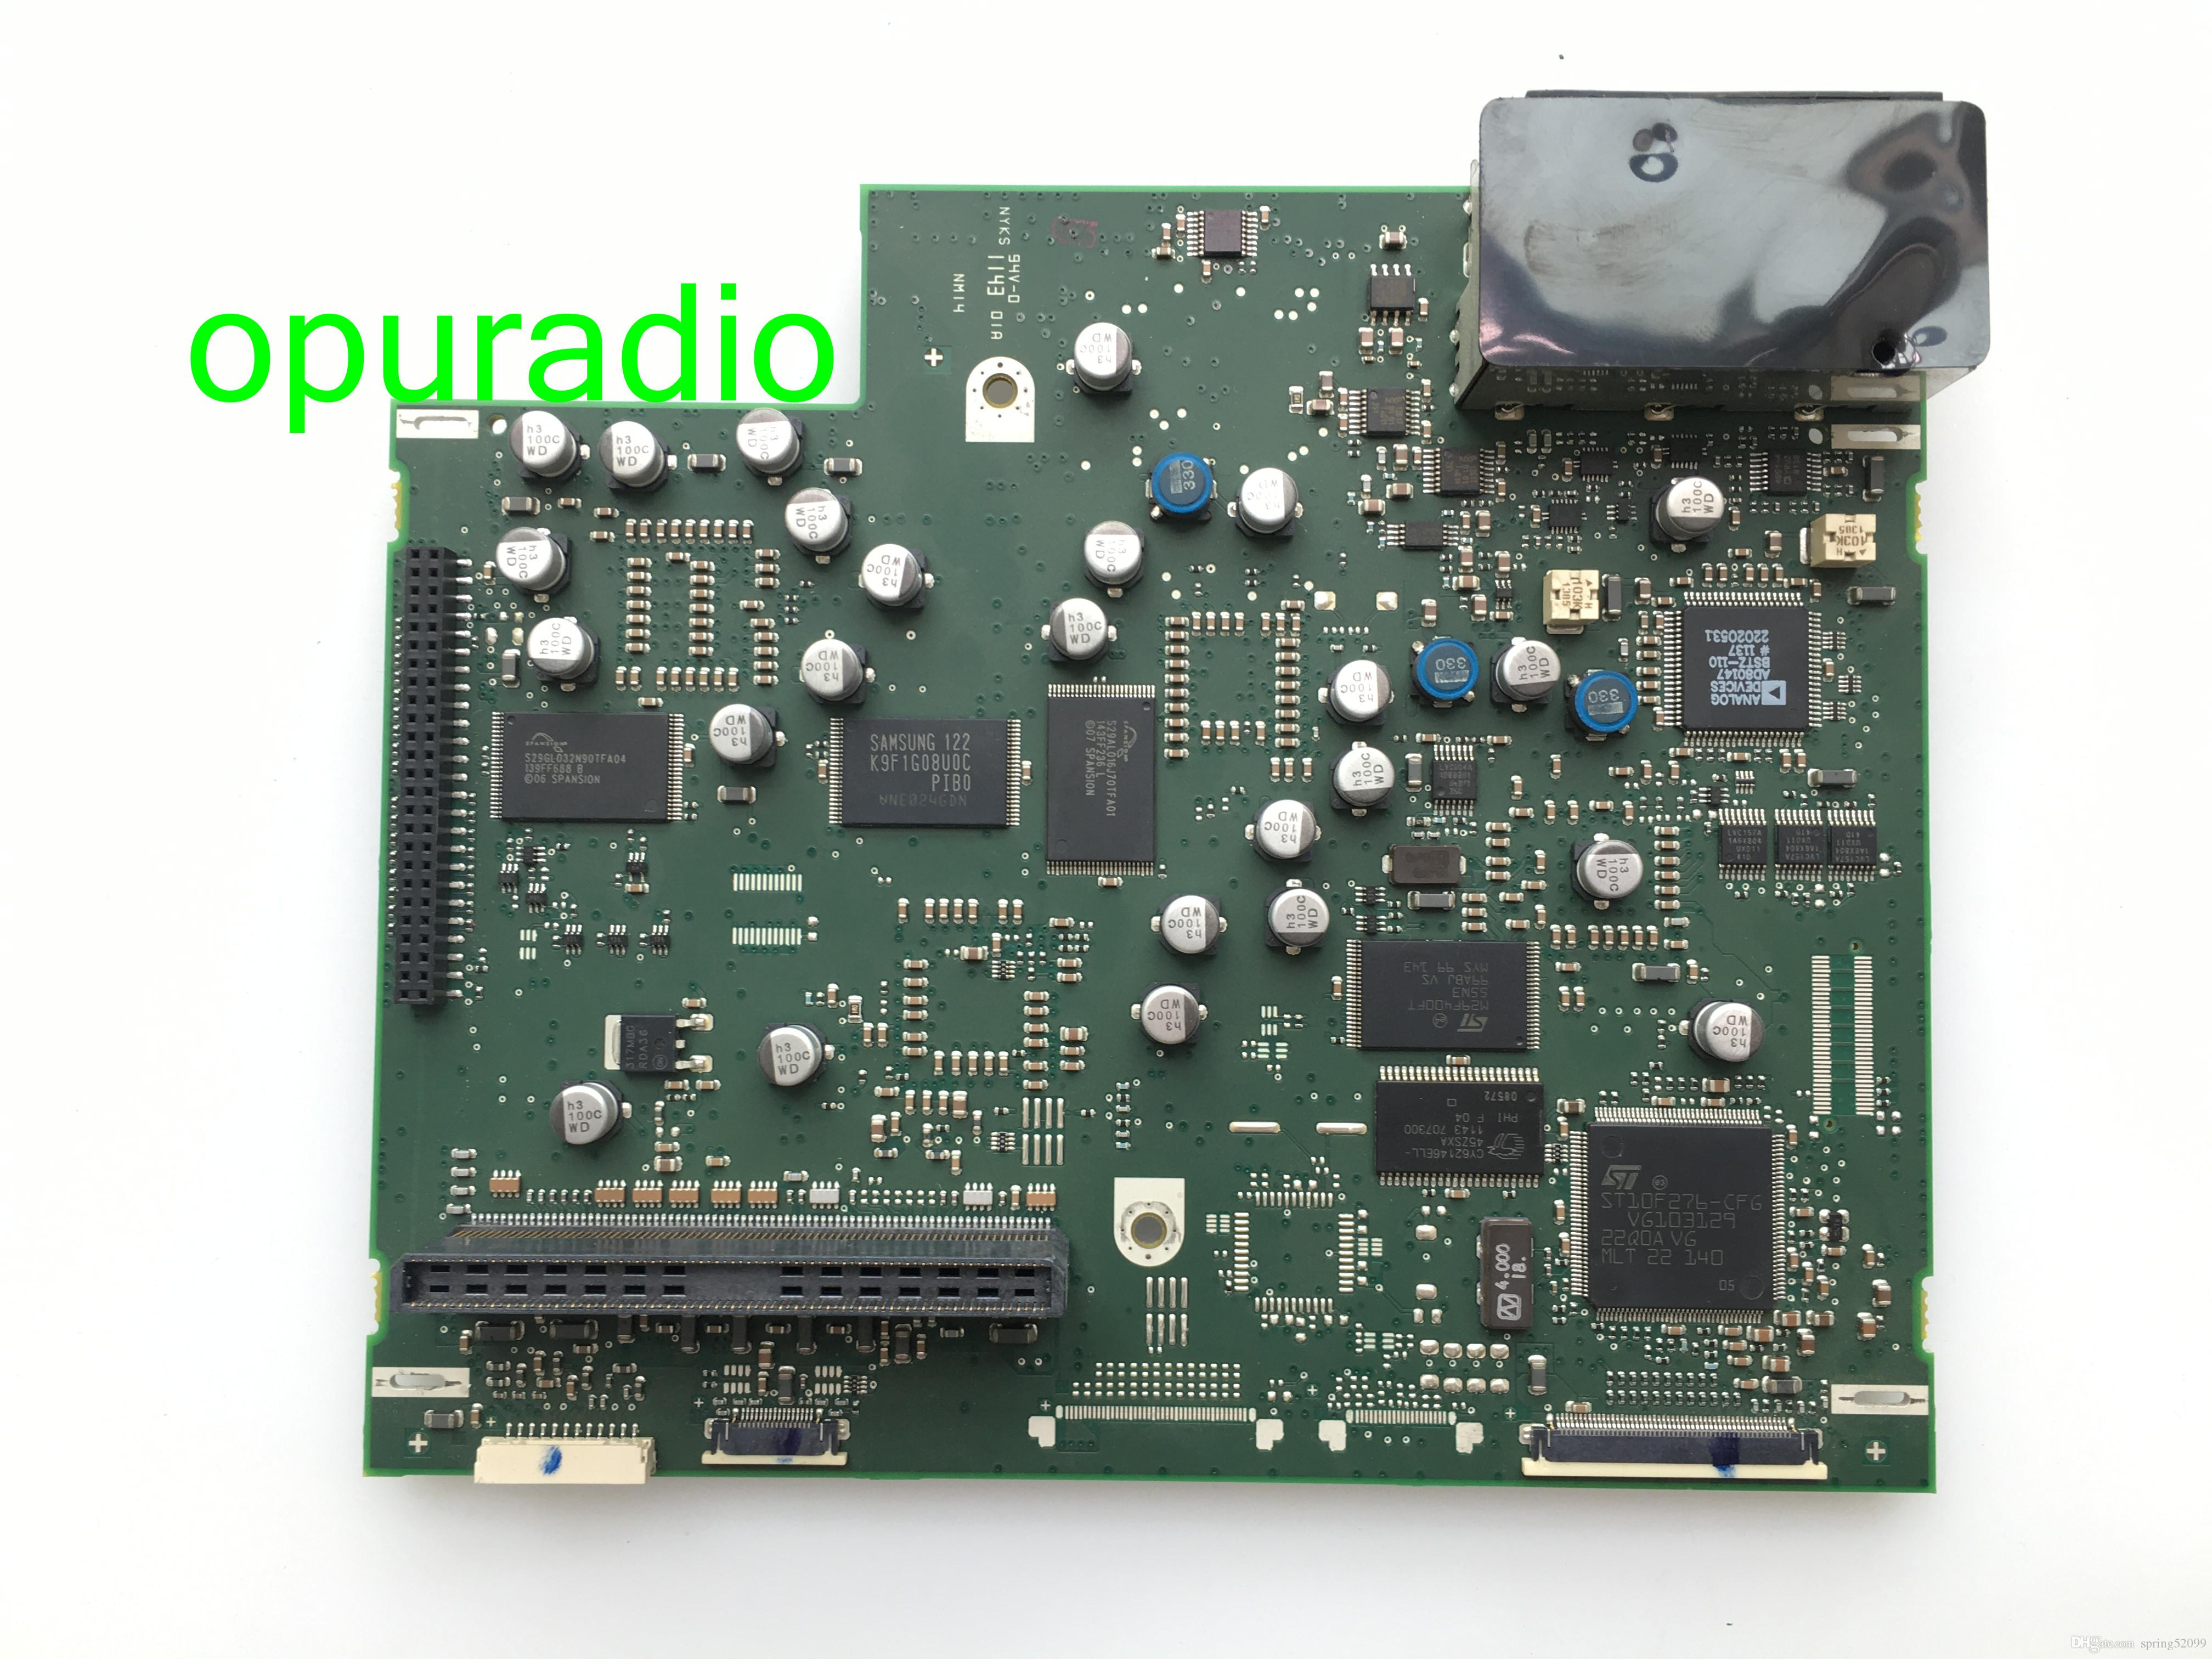 Vw Rns510 Bluetooth Radio Wiring Electrical Diagram Schematics Isuzu Red Gray Mainboard New Style With Code For Volkswagen Led Navigation Car Audio Systems Harley Davidson